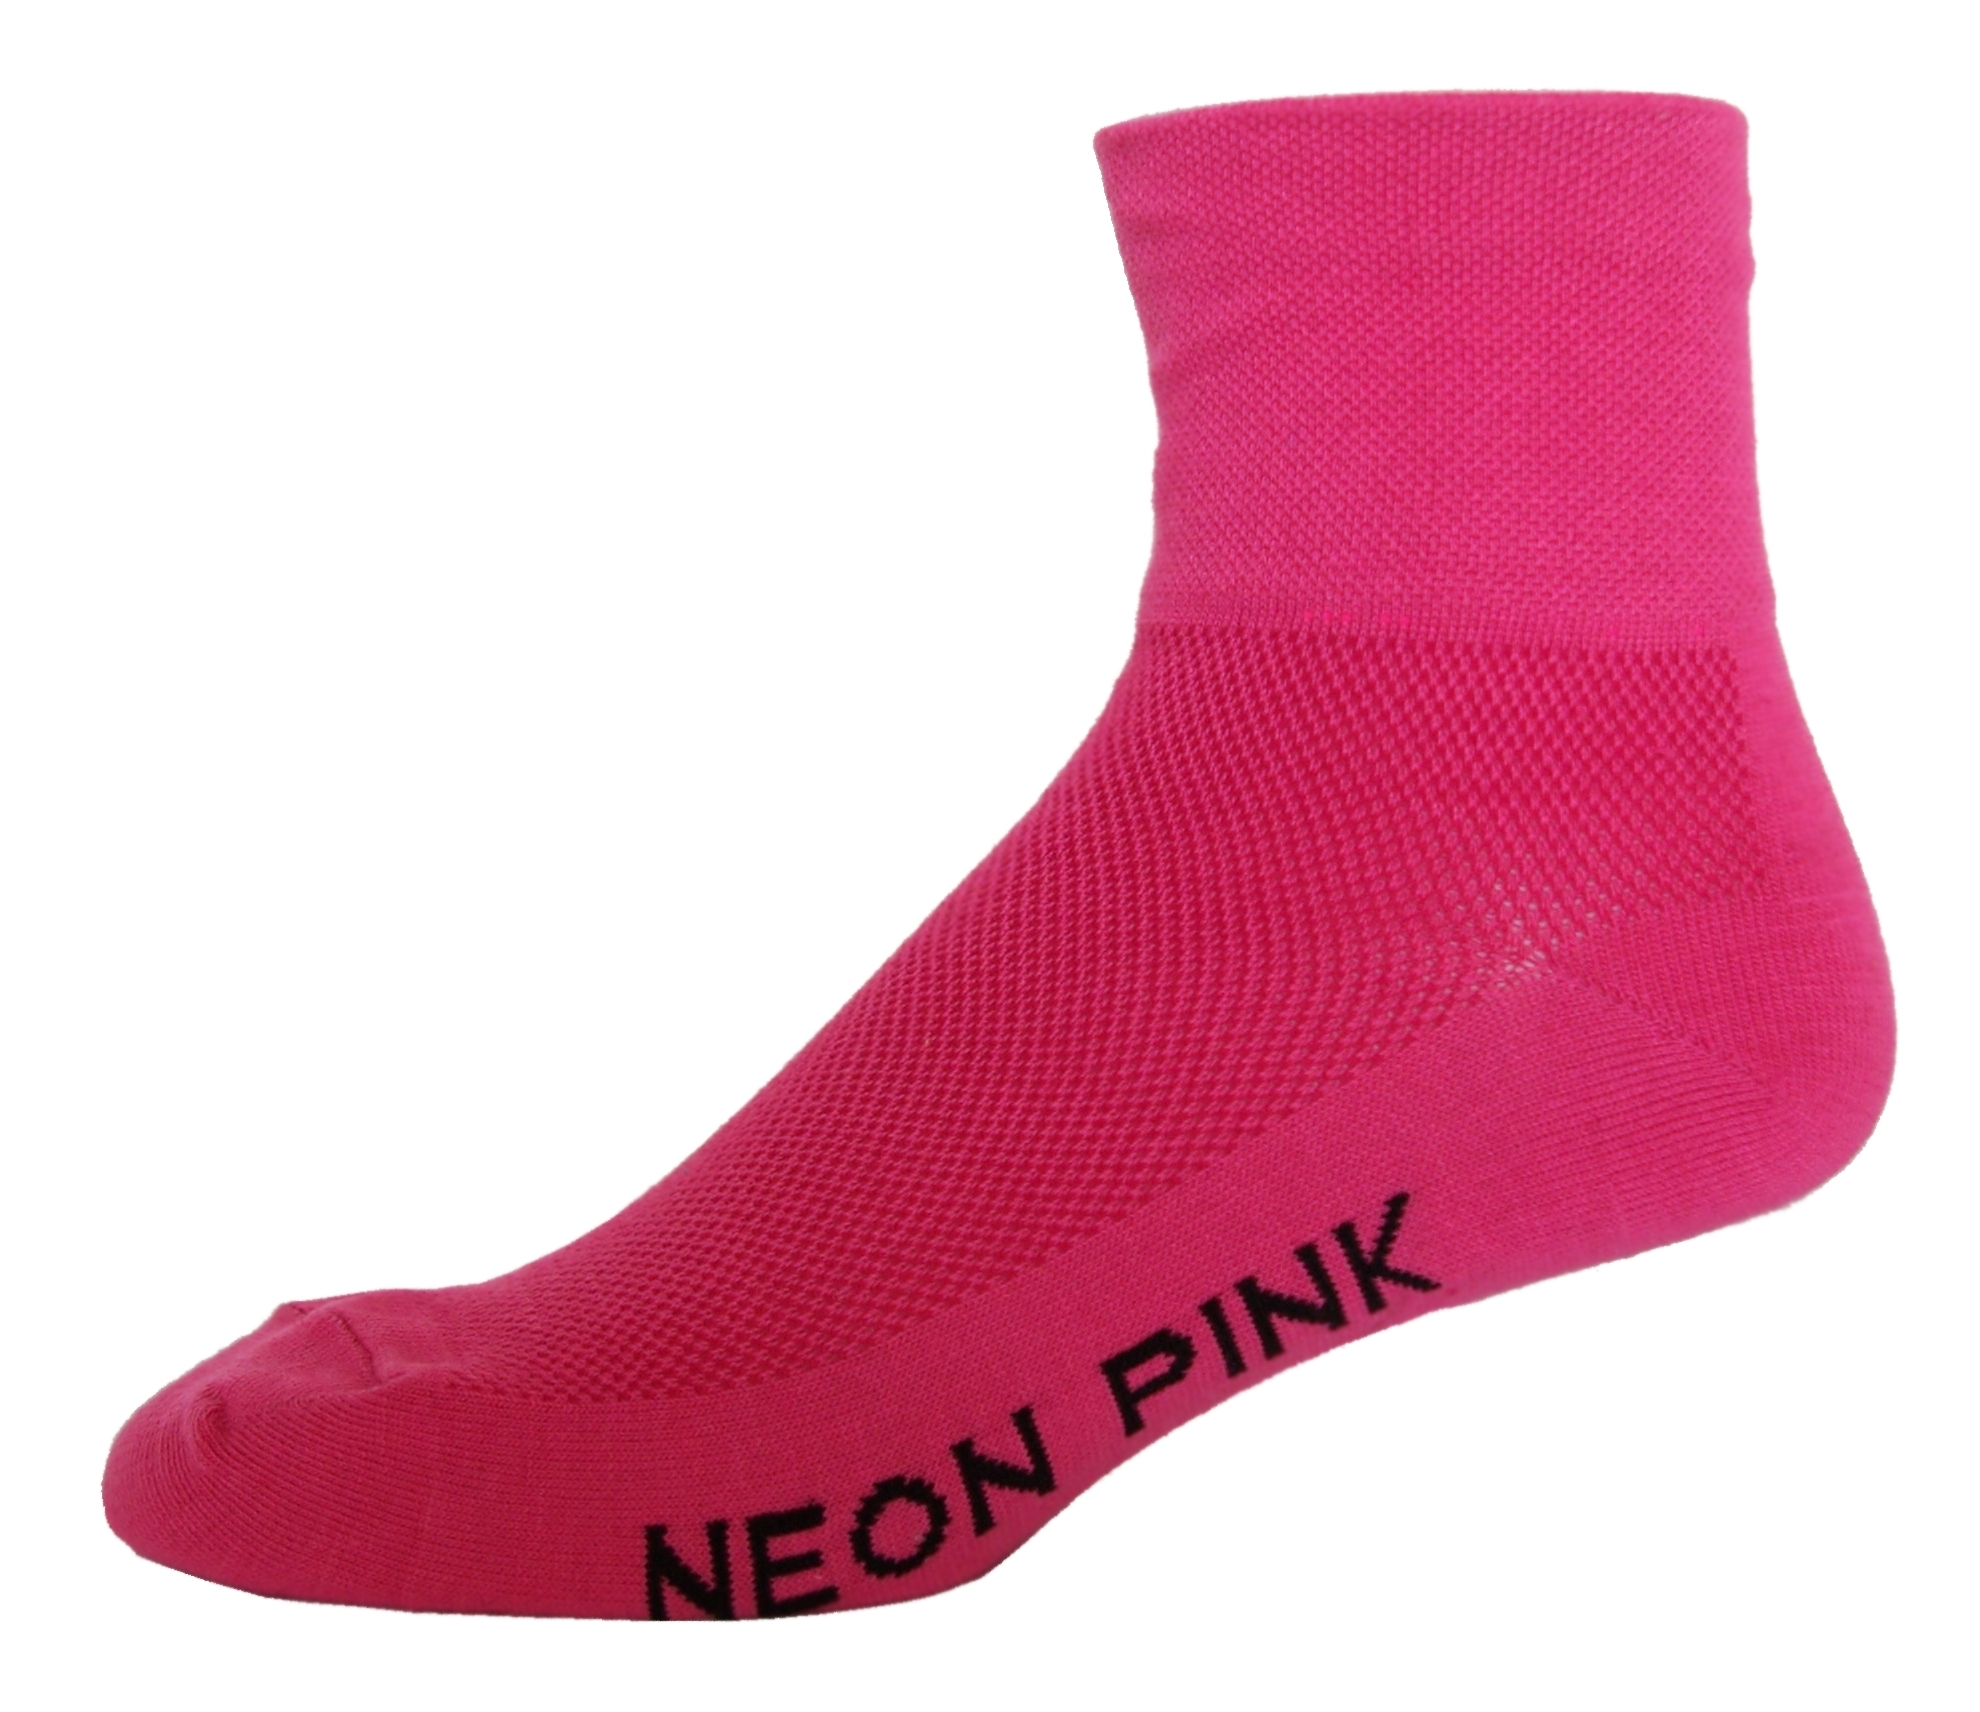 NLZ Neon Pink Cycling Socks